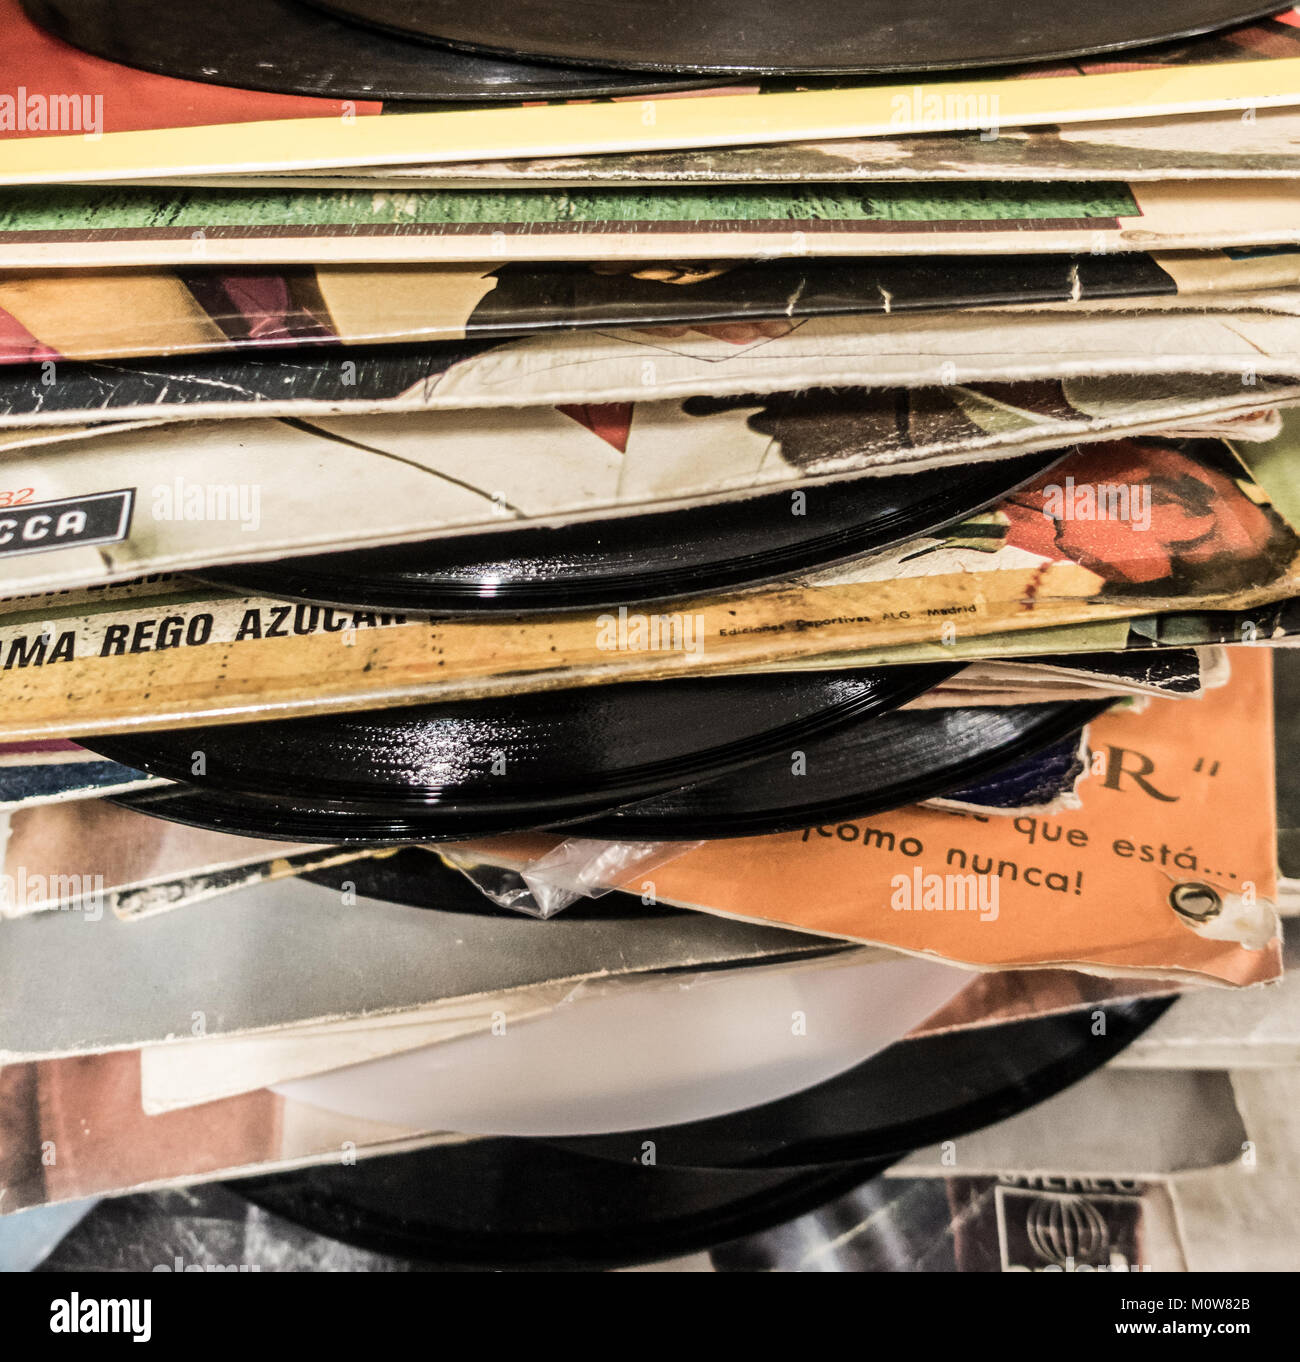 Vinyl records in charity shop. - Stock Image